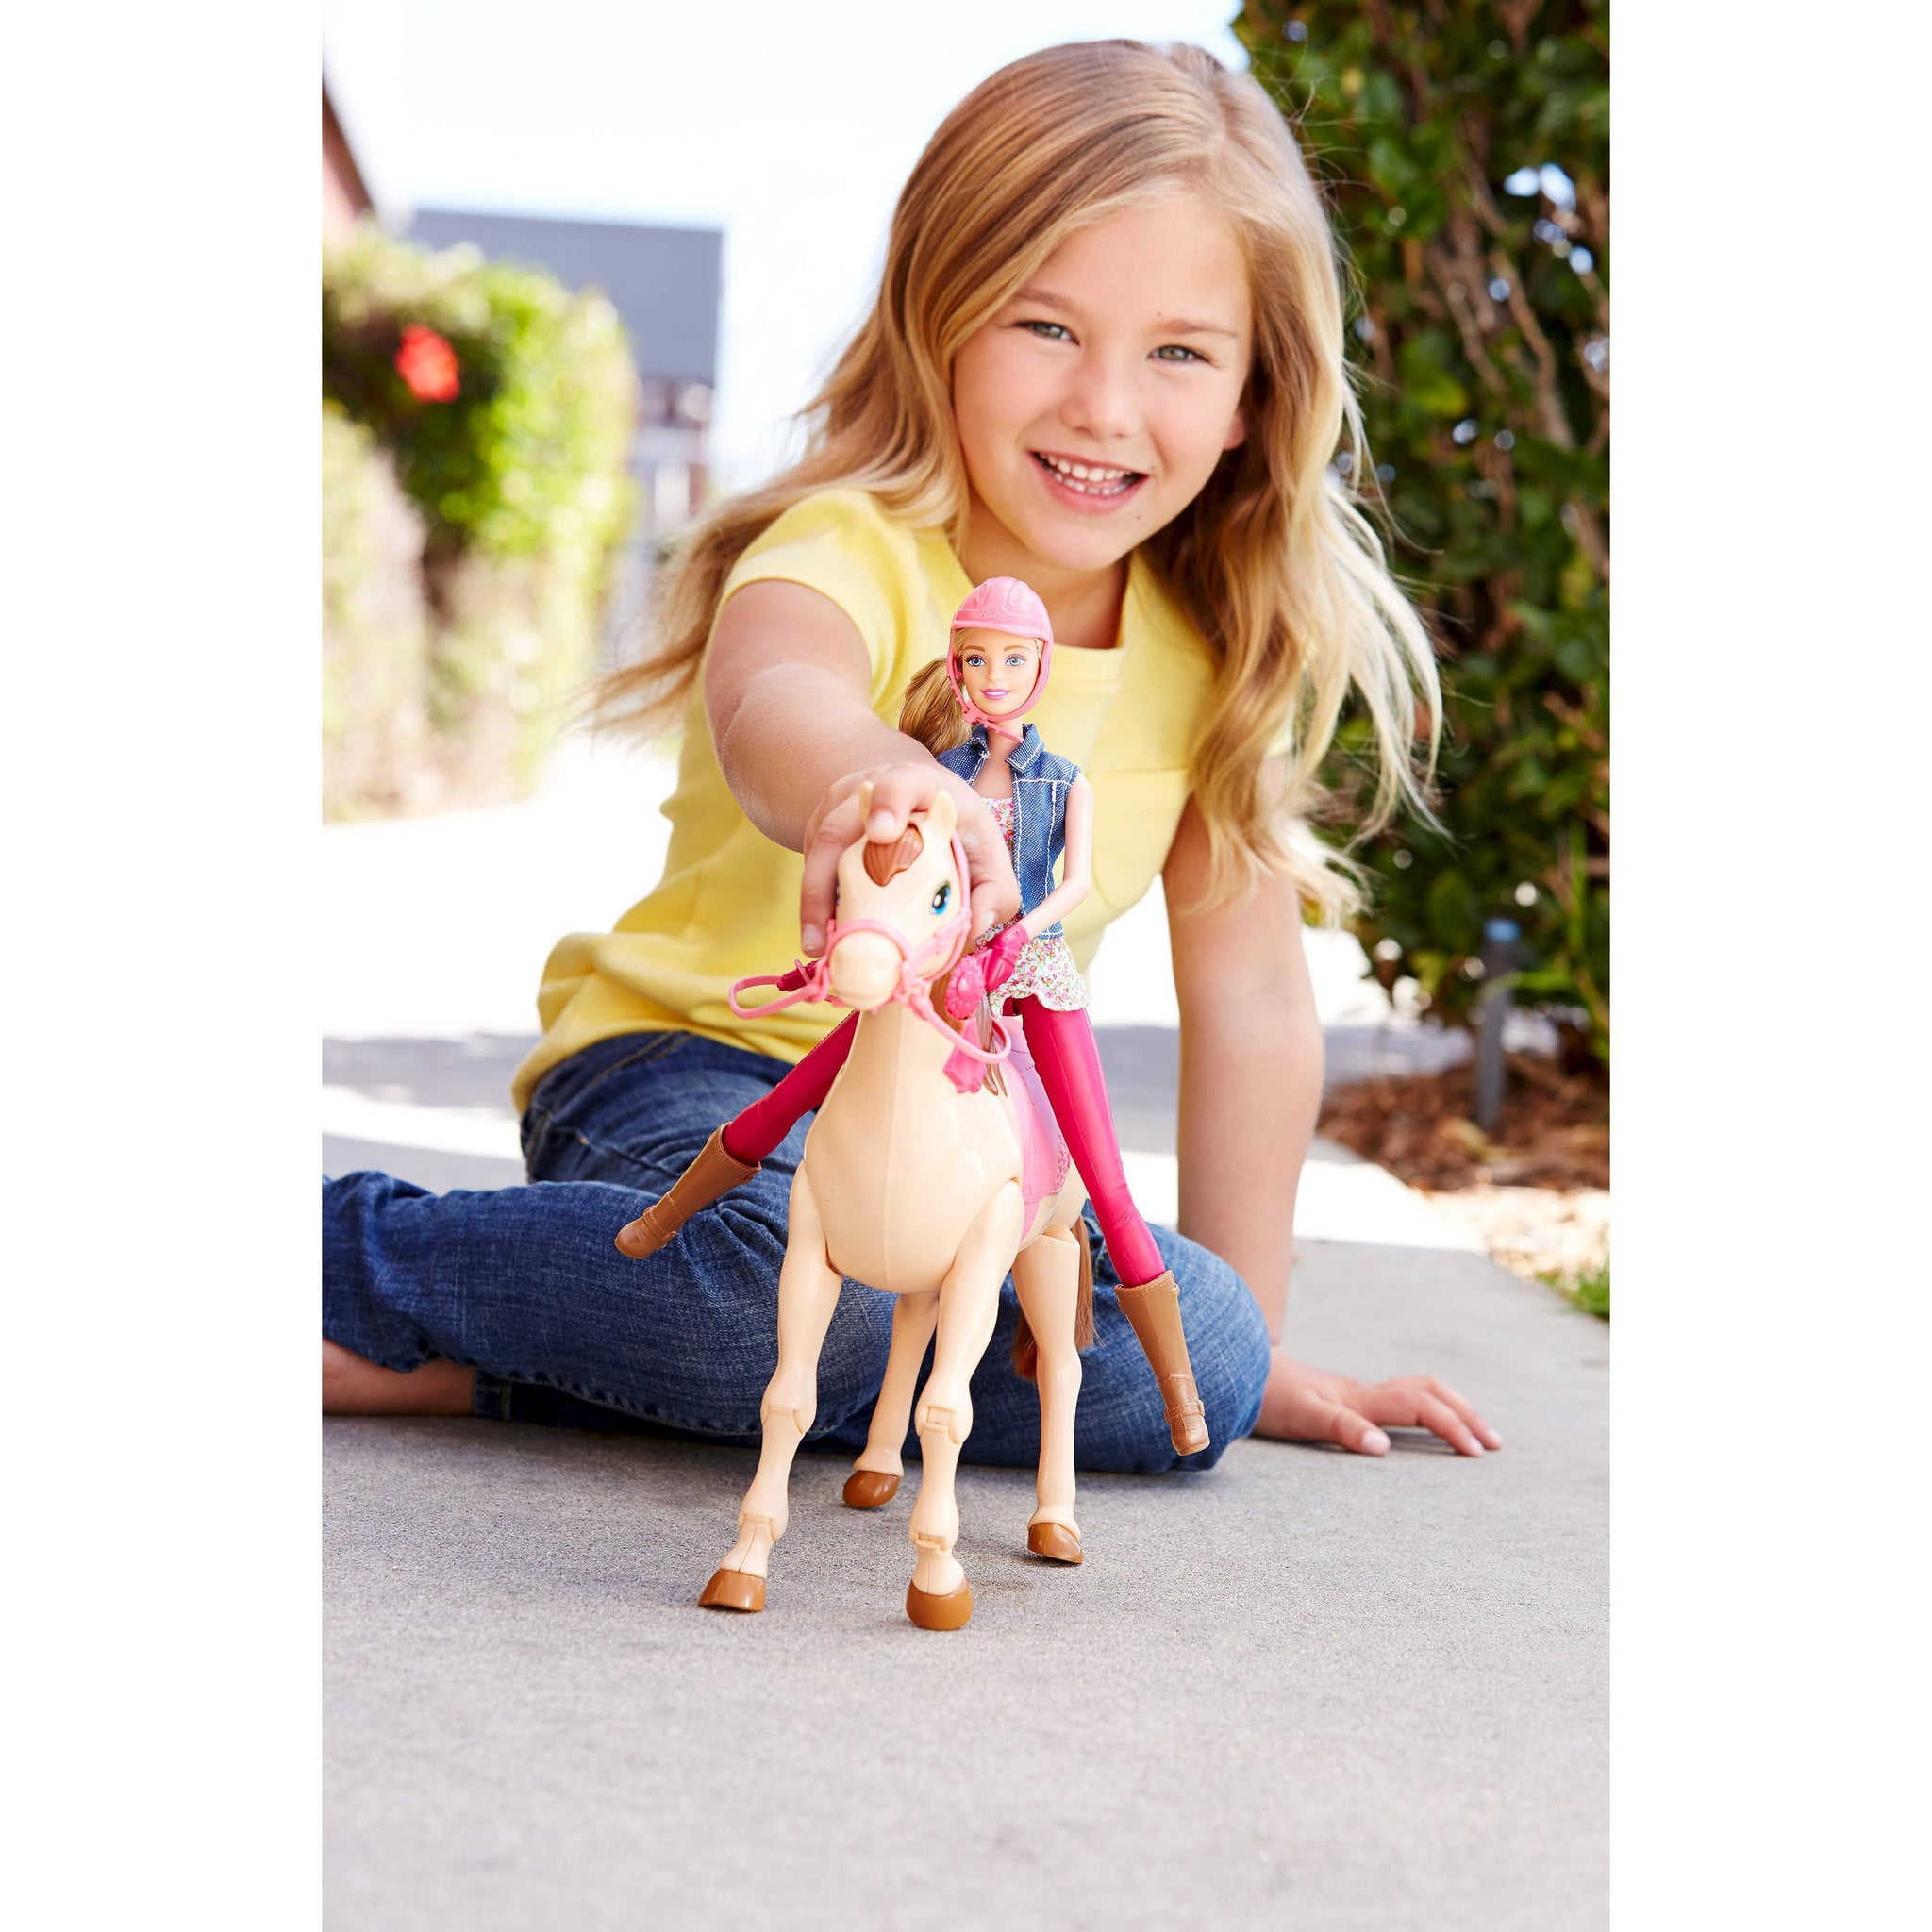 for 3 year olds barbie saddle 39 n ride horse doll the best gifts for kids under 10 years old. Black Bedroom Furniture Sets. Home Design Ideas